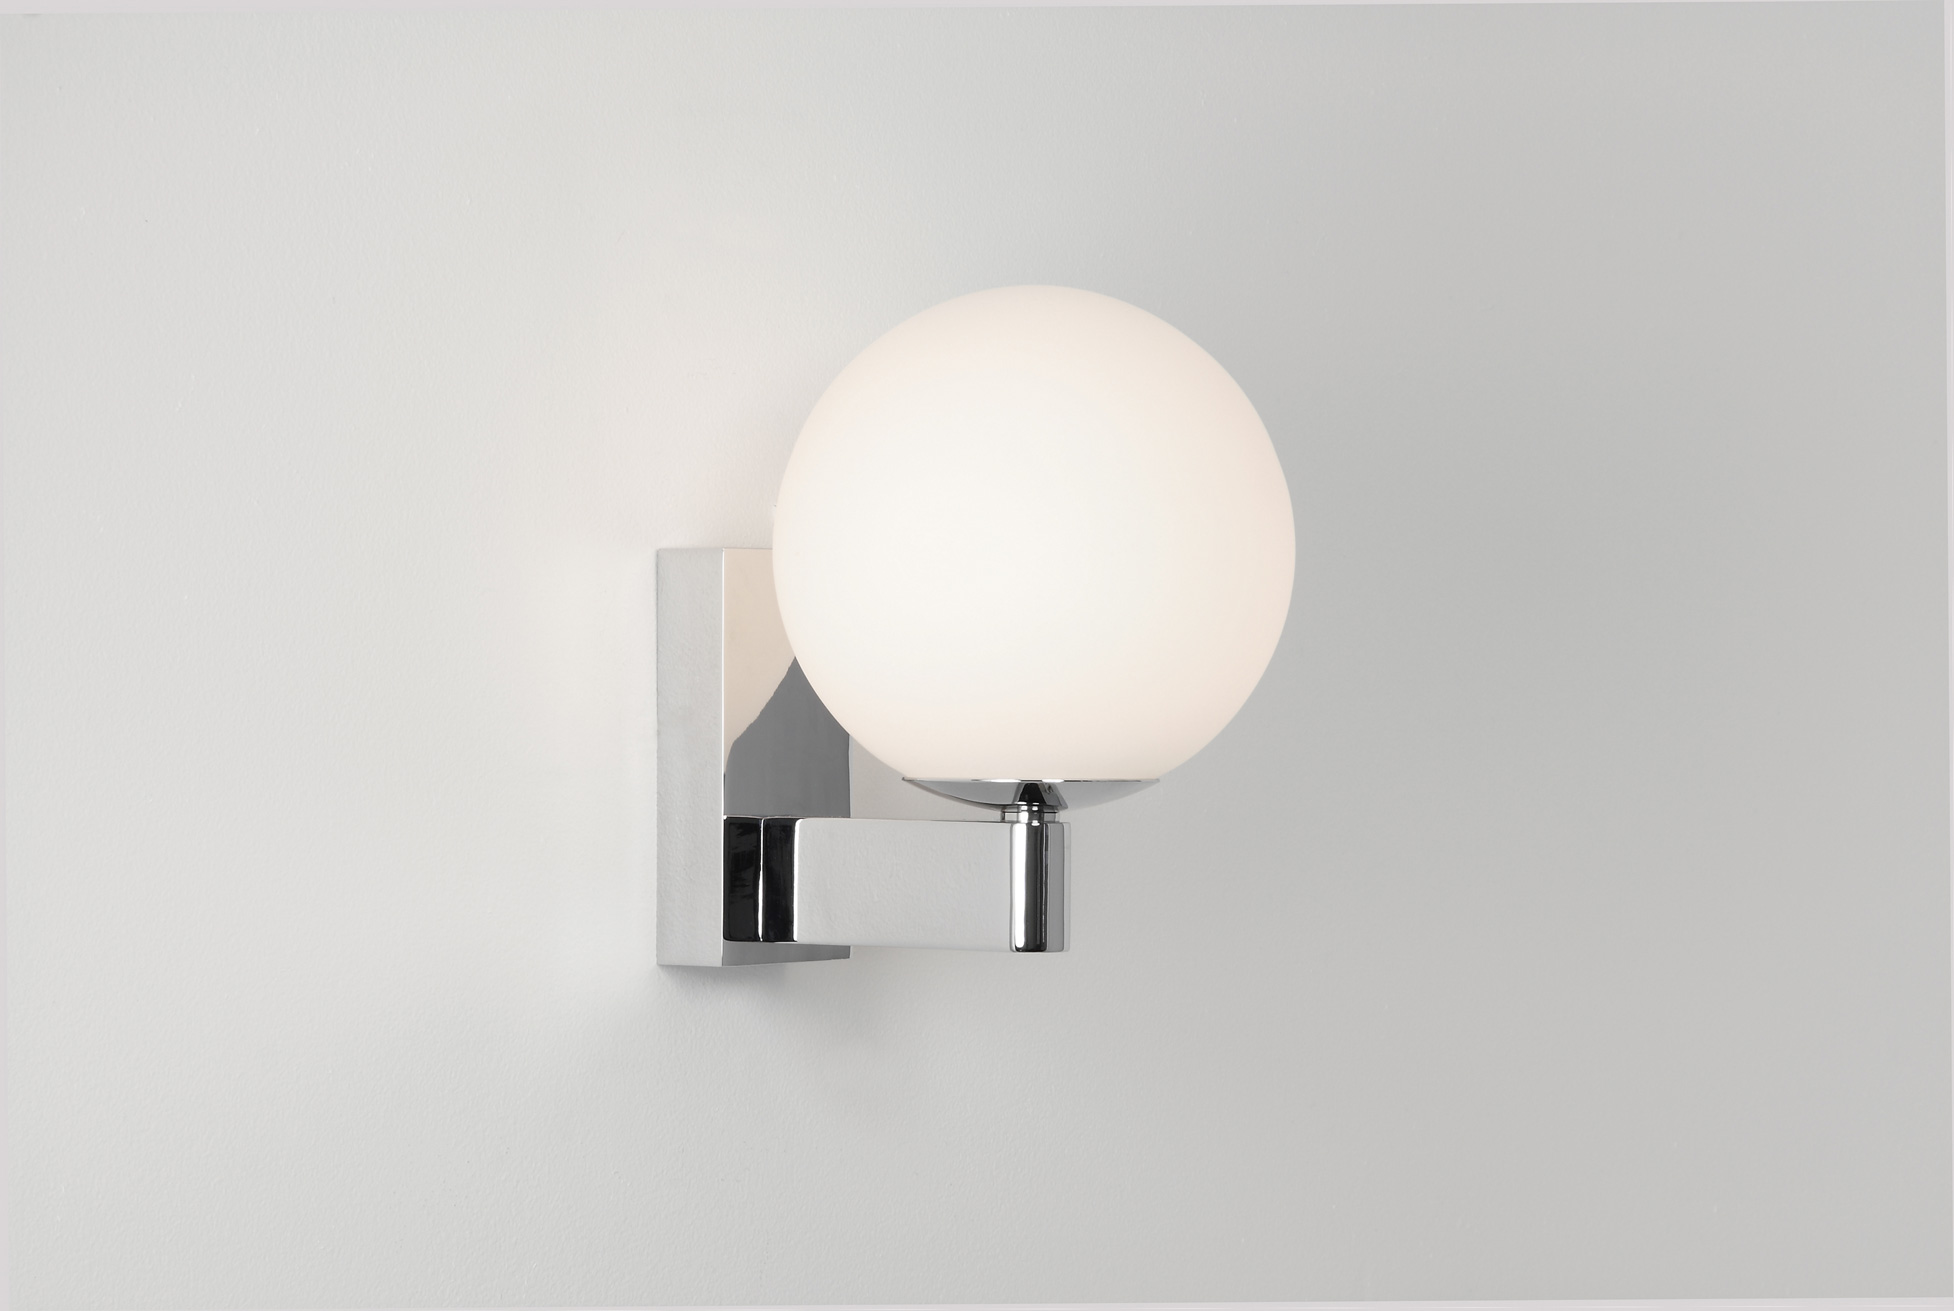 Fantastic Details About Astro Sagara 0774 Globe Bathroom Wall Light 1 X 40W G9 Ip44 Polished Chrome Home Interior And Landscaping Fragforummapetitesourisinfo